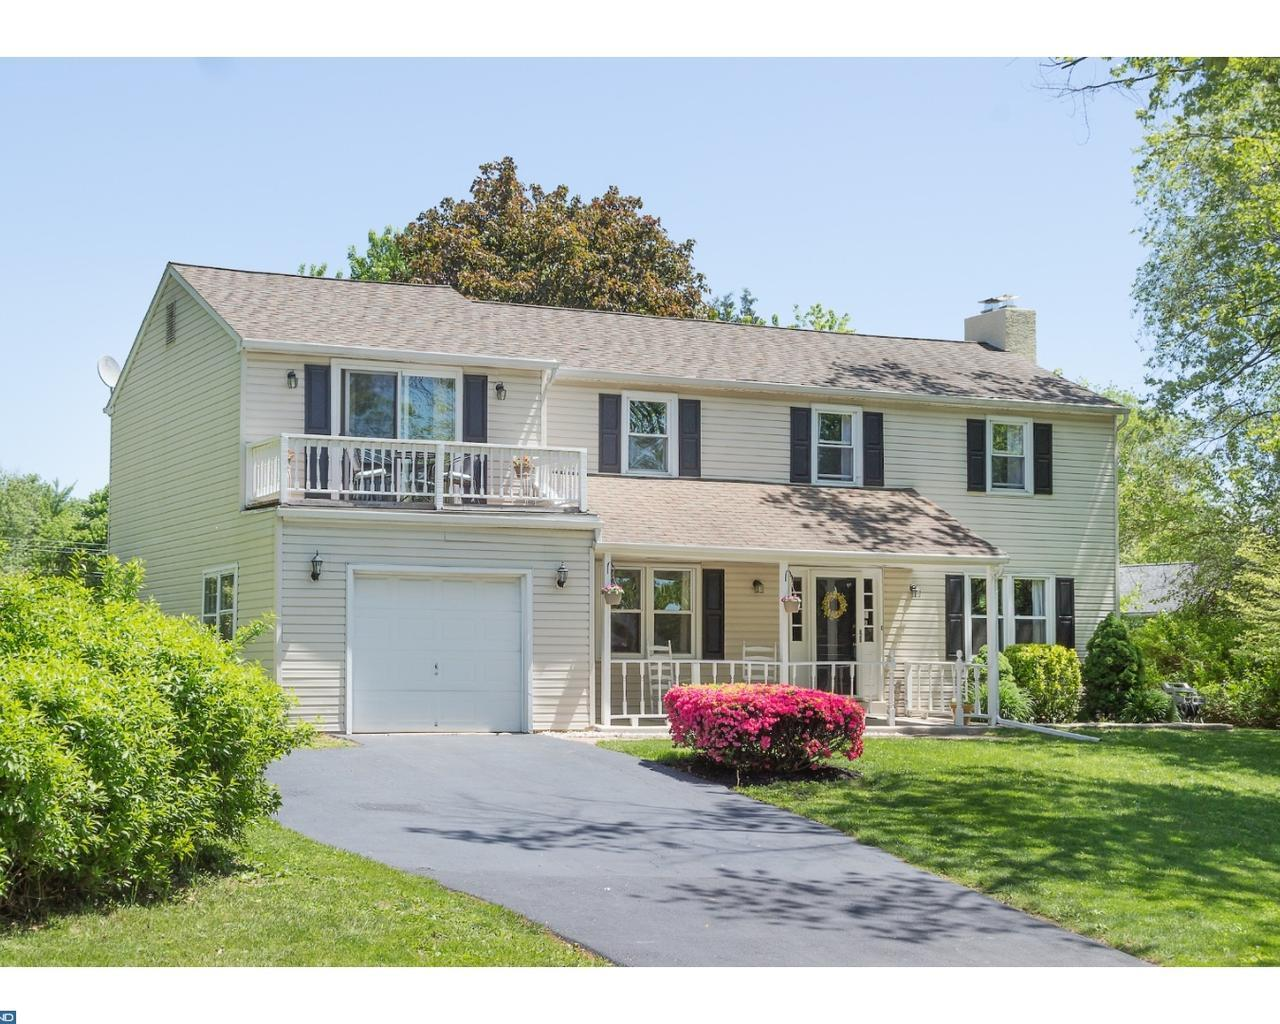 303 fairview dr exton pa mls 6979857 century 21